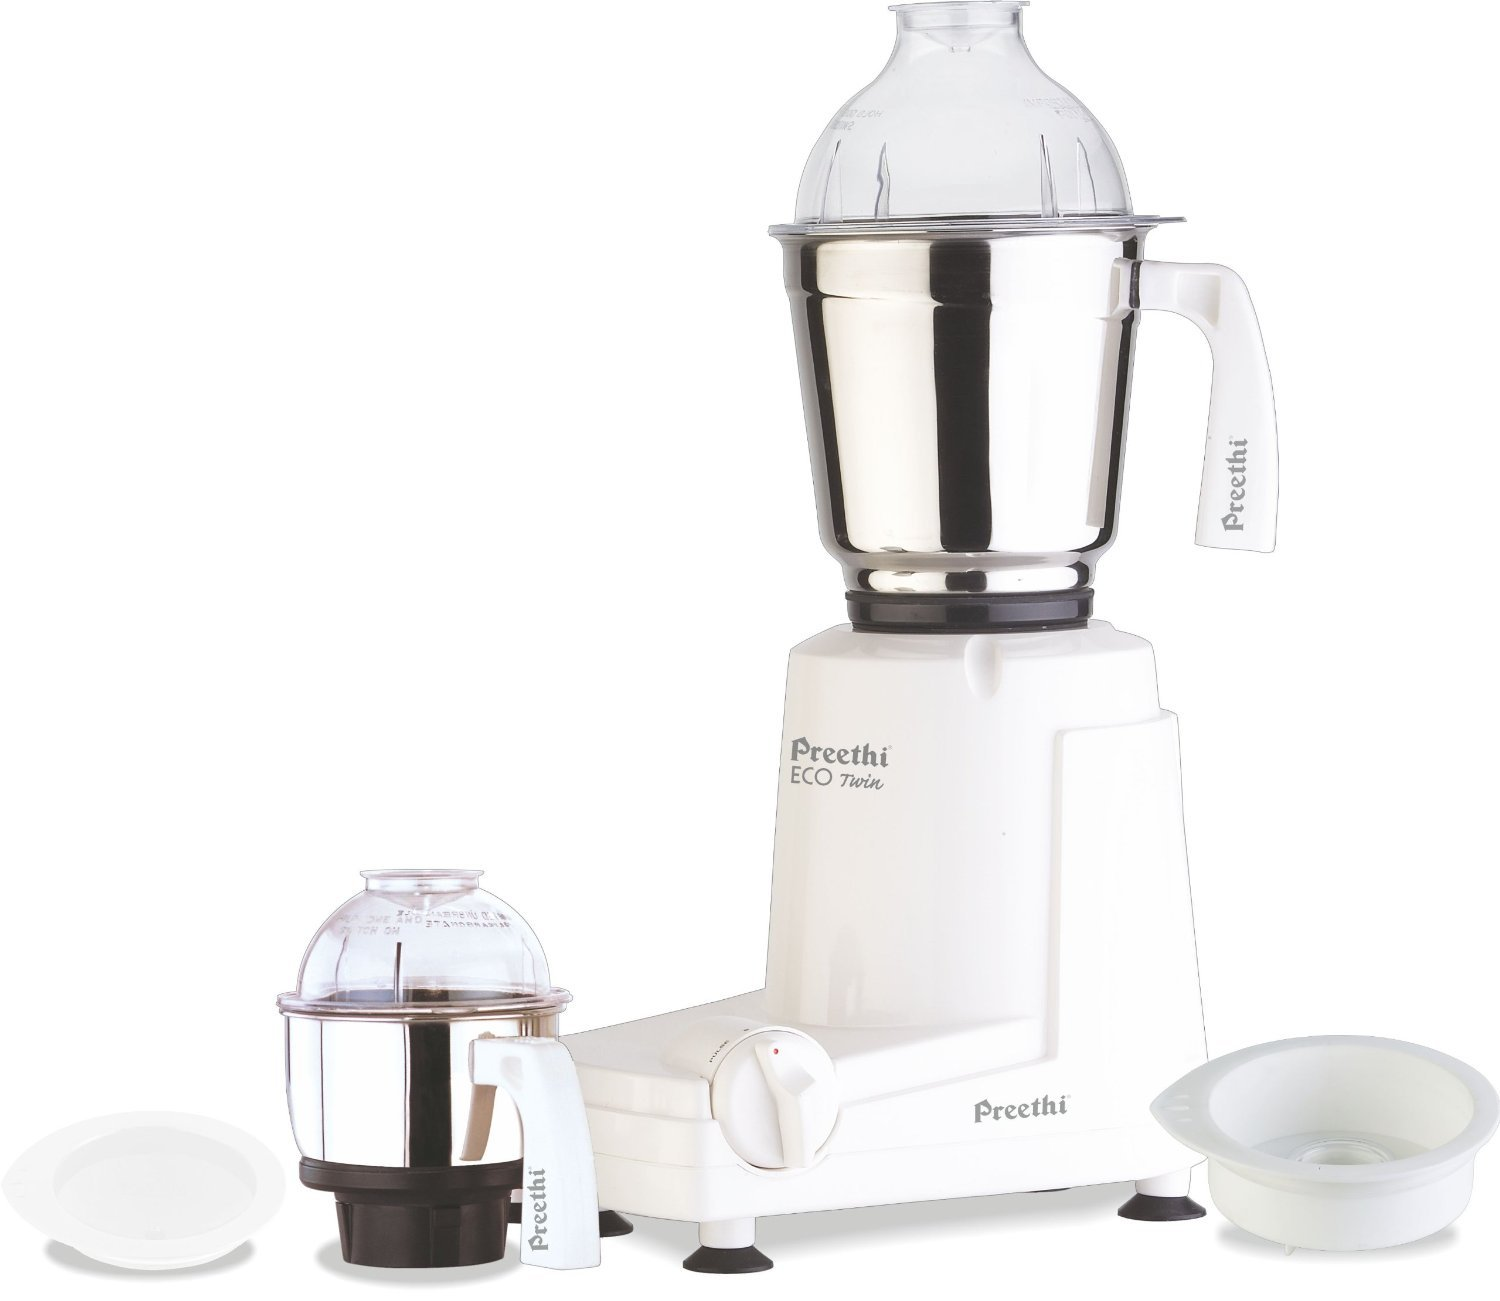 Preethi MG146 Eco Twin 2-Jar Mixer Grinder, Medium, White